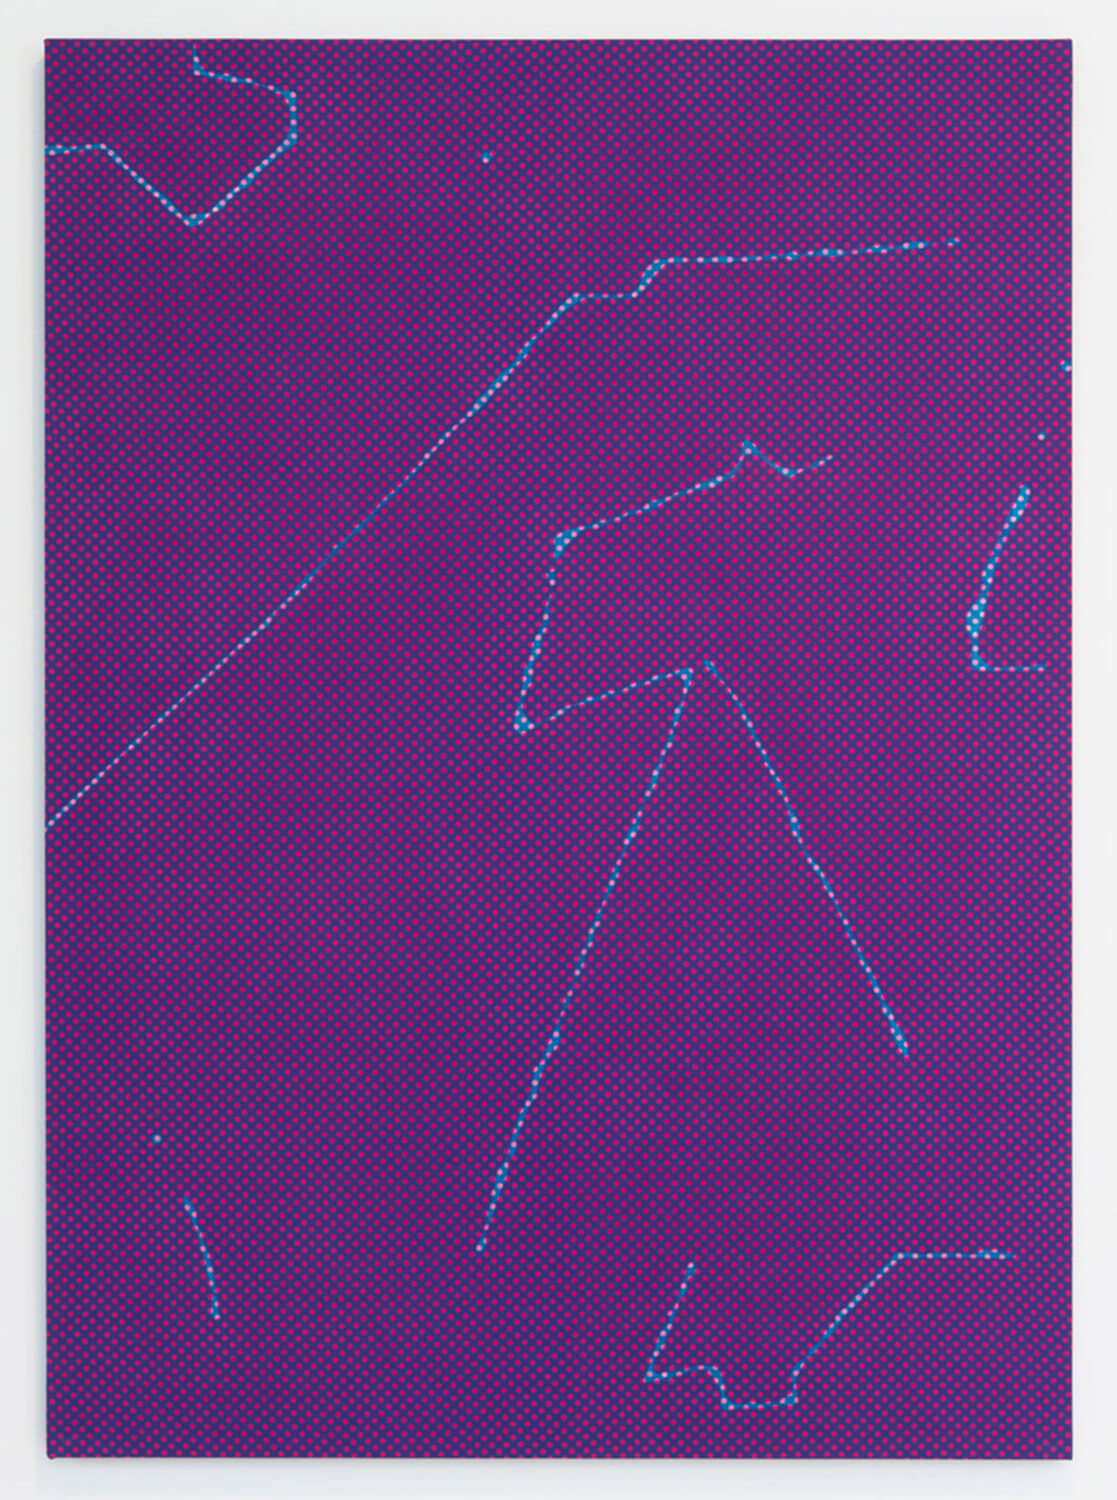 Cheryl Donegan                                         'Untitled (Dots, Purple - Blue)', 2015                                         50 x 36 Inches                                         dyed cotton